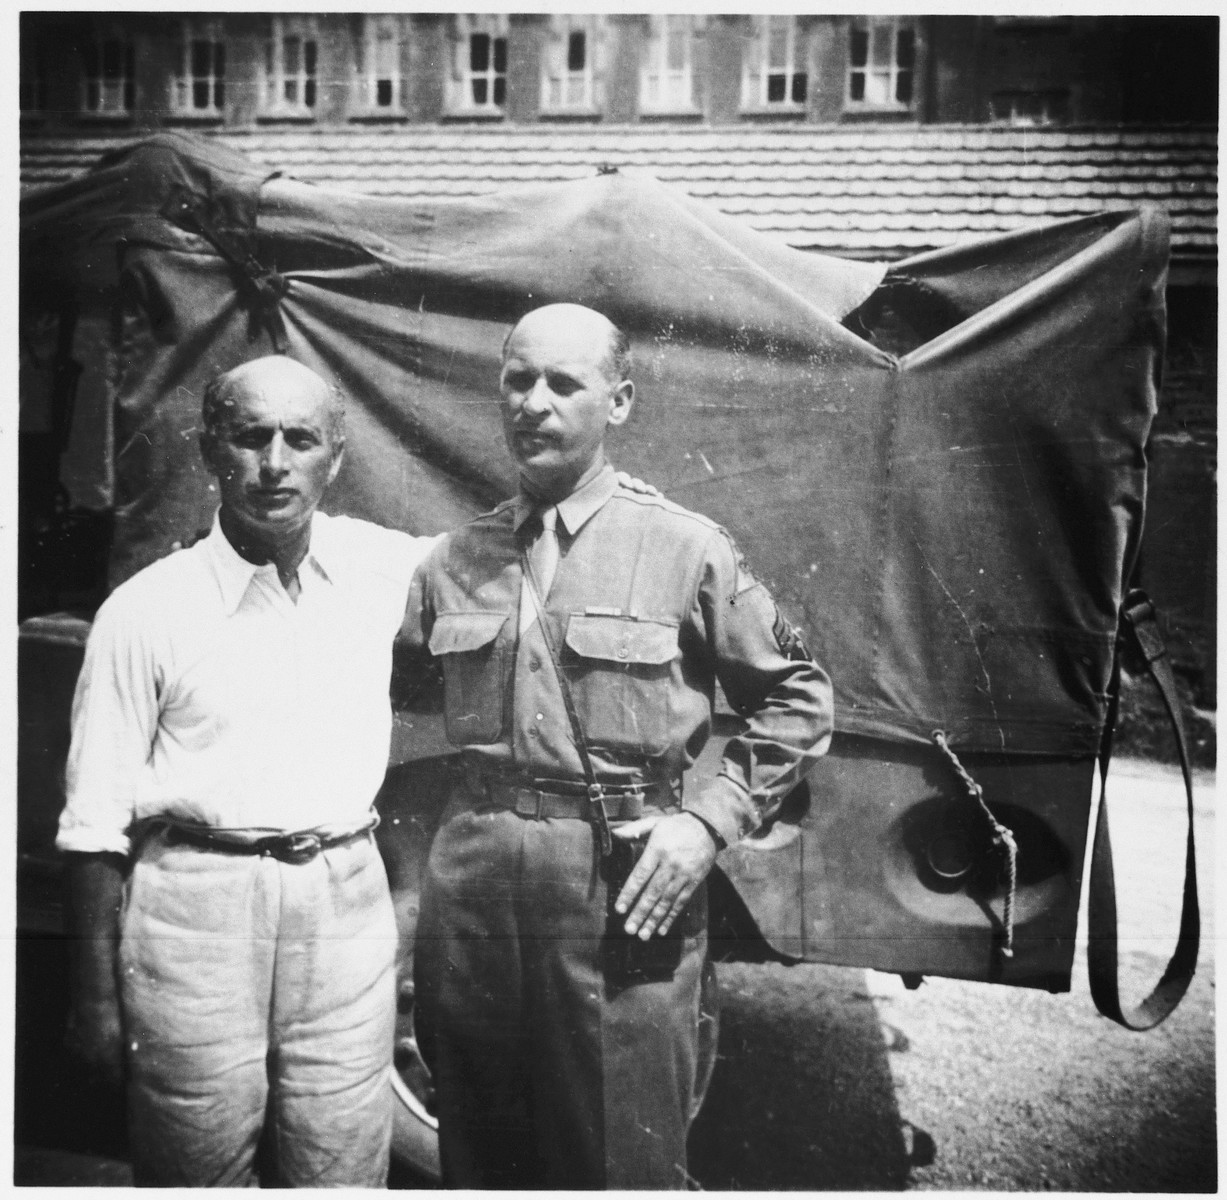 Portrait of two Jewish brothers on the day they found each other at the St. Ottilien displaced persons hospital camp in Bavaria.  Pictured are survivor Michael Hofmekler (left) and U.S. serviceman Robert Hofmekler (right).